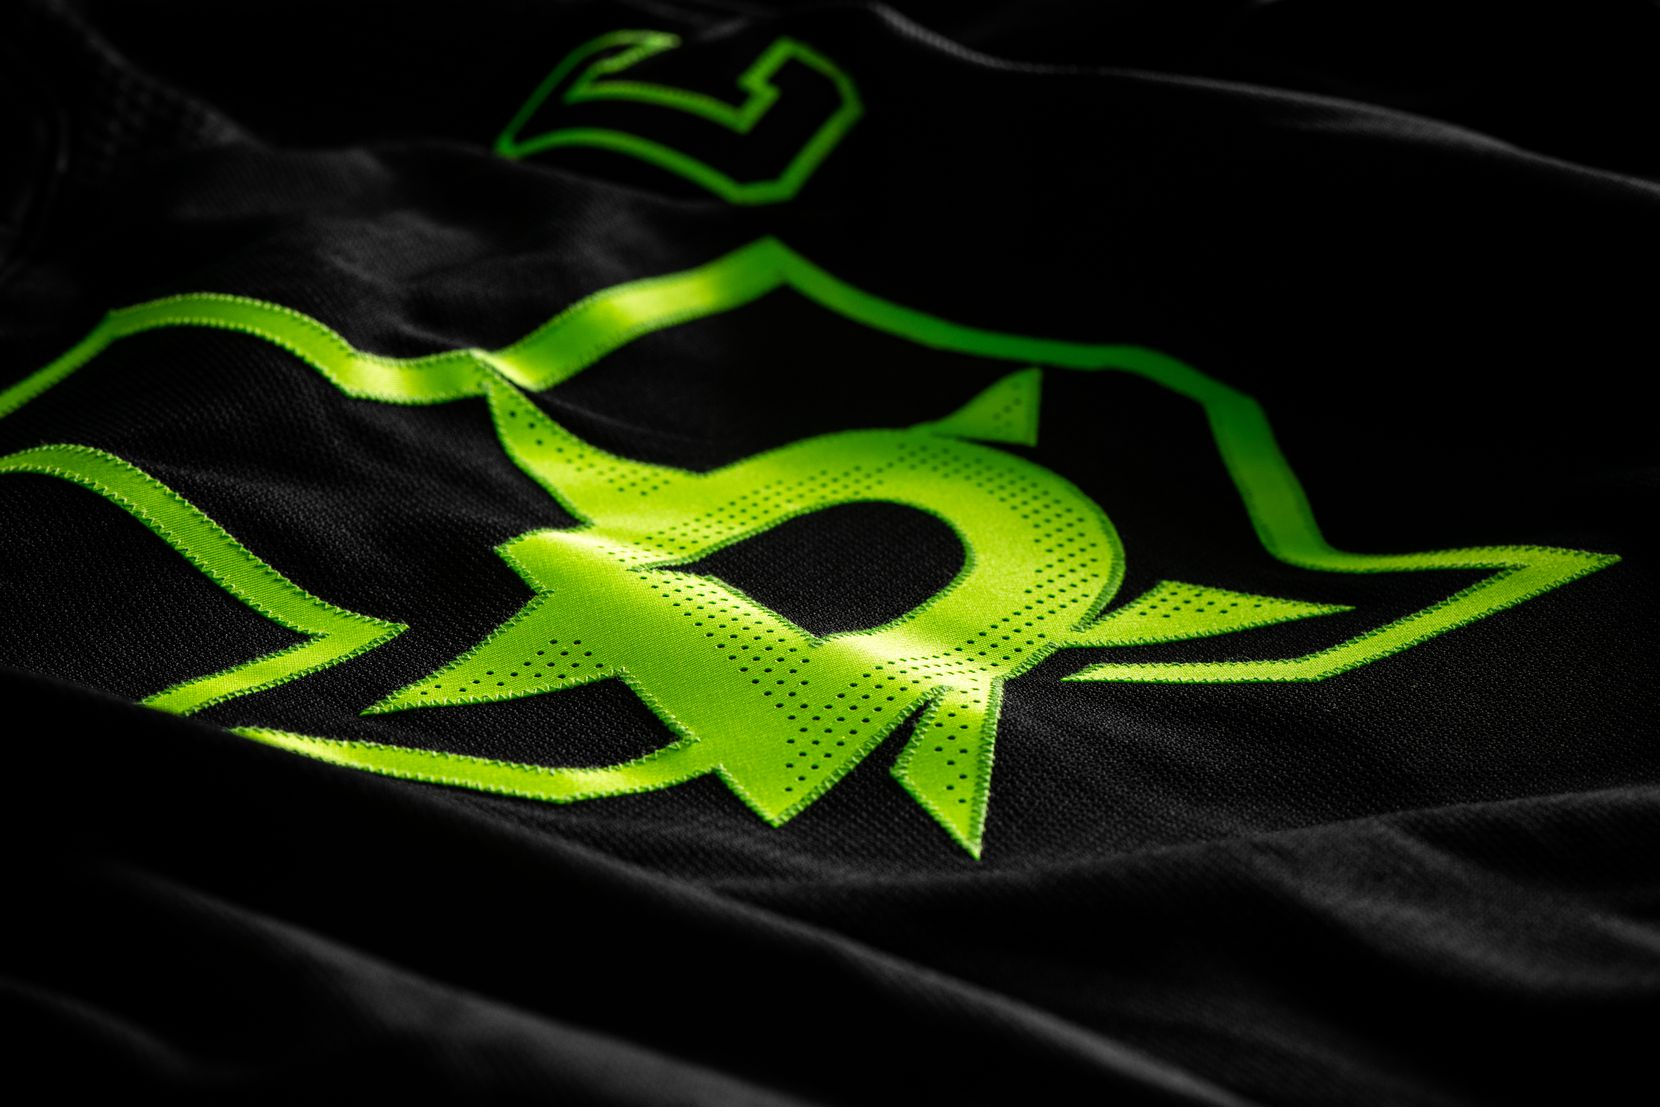 """The Dallas Stars revealed their new third jersey on Wednesday morning, named """"Blackout"""" by the team and using a neon green the team called """"Skyline Green."""""""